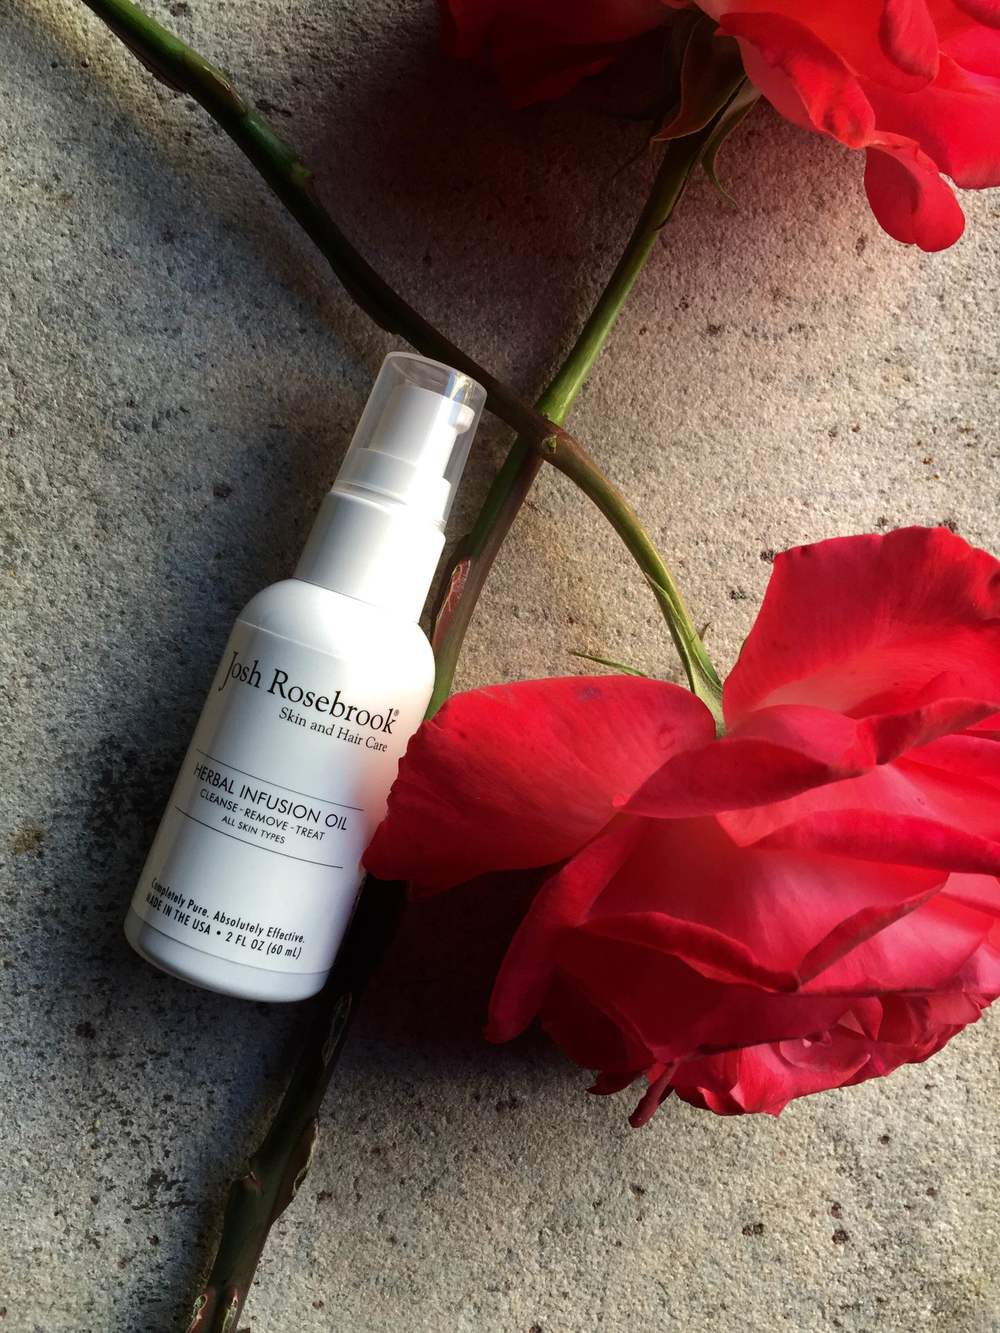 Josh Rosebrook's Herbal Infusion Oil is housed in a 2 fl. oz. (60 ml) white plastic bottle with a pump. The Herbal Infusion Oil retails for $44. Josh Rosebrook sent me the Herbal Infusion Oil and Nutrient Day Cream Tinted with SPF 30 Non-Nano Zinc Oxide for review consideration.